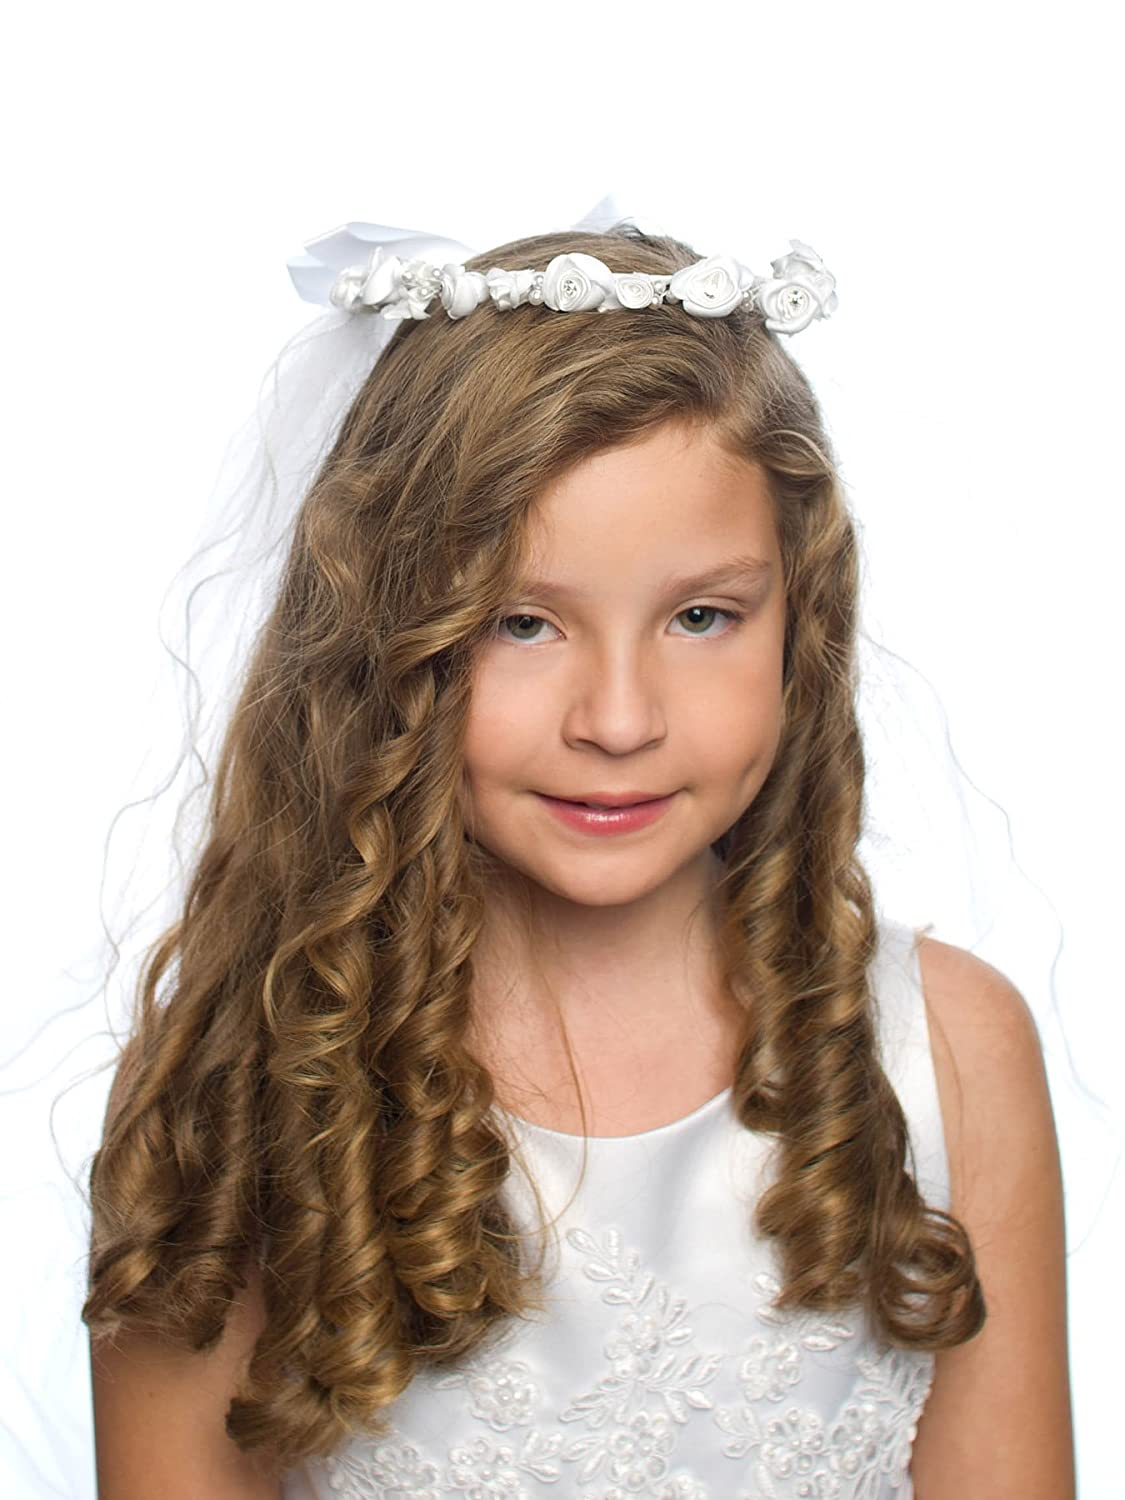 Dressforless Girls Corded Flowers with Rhinestone Accents First Communion Veil